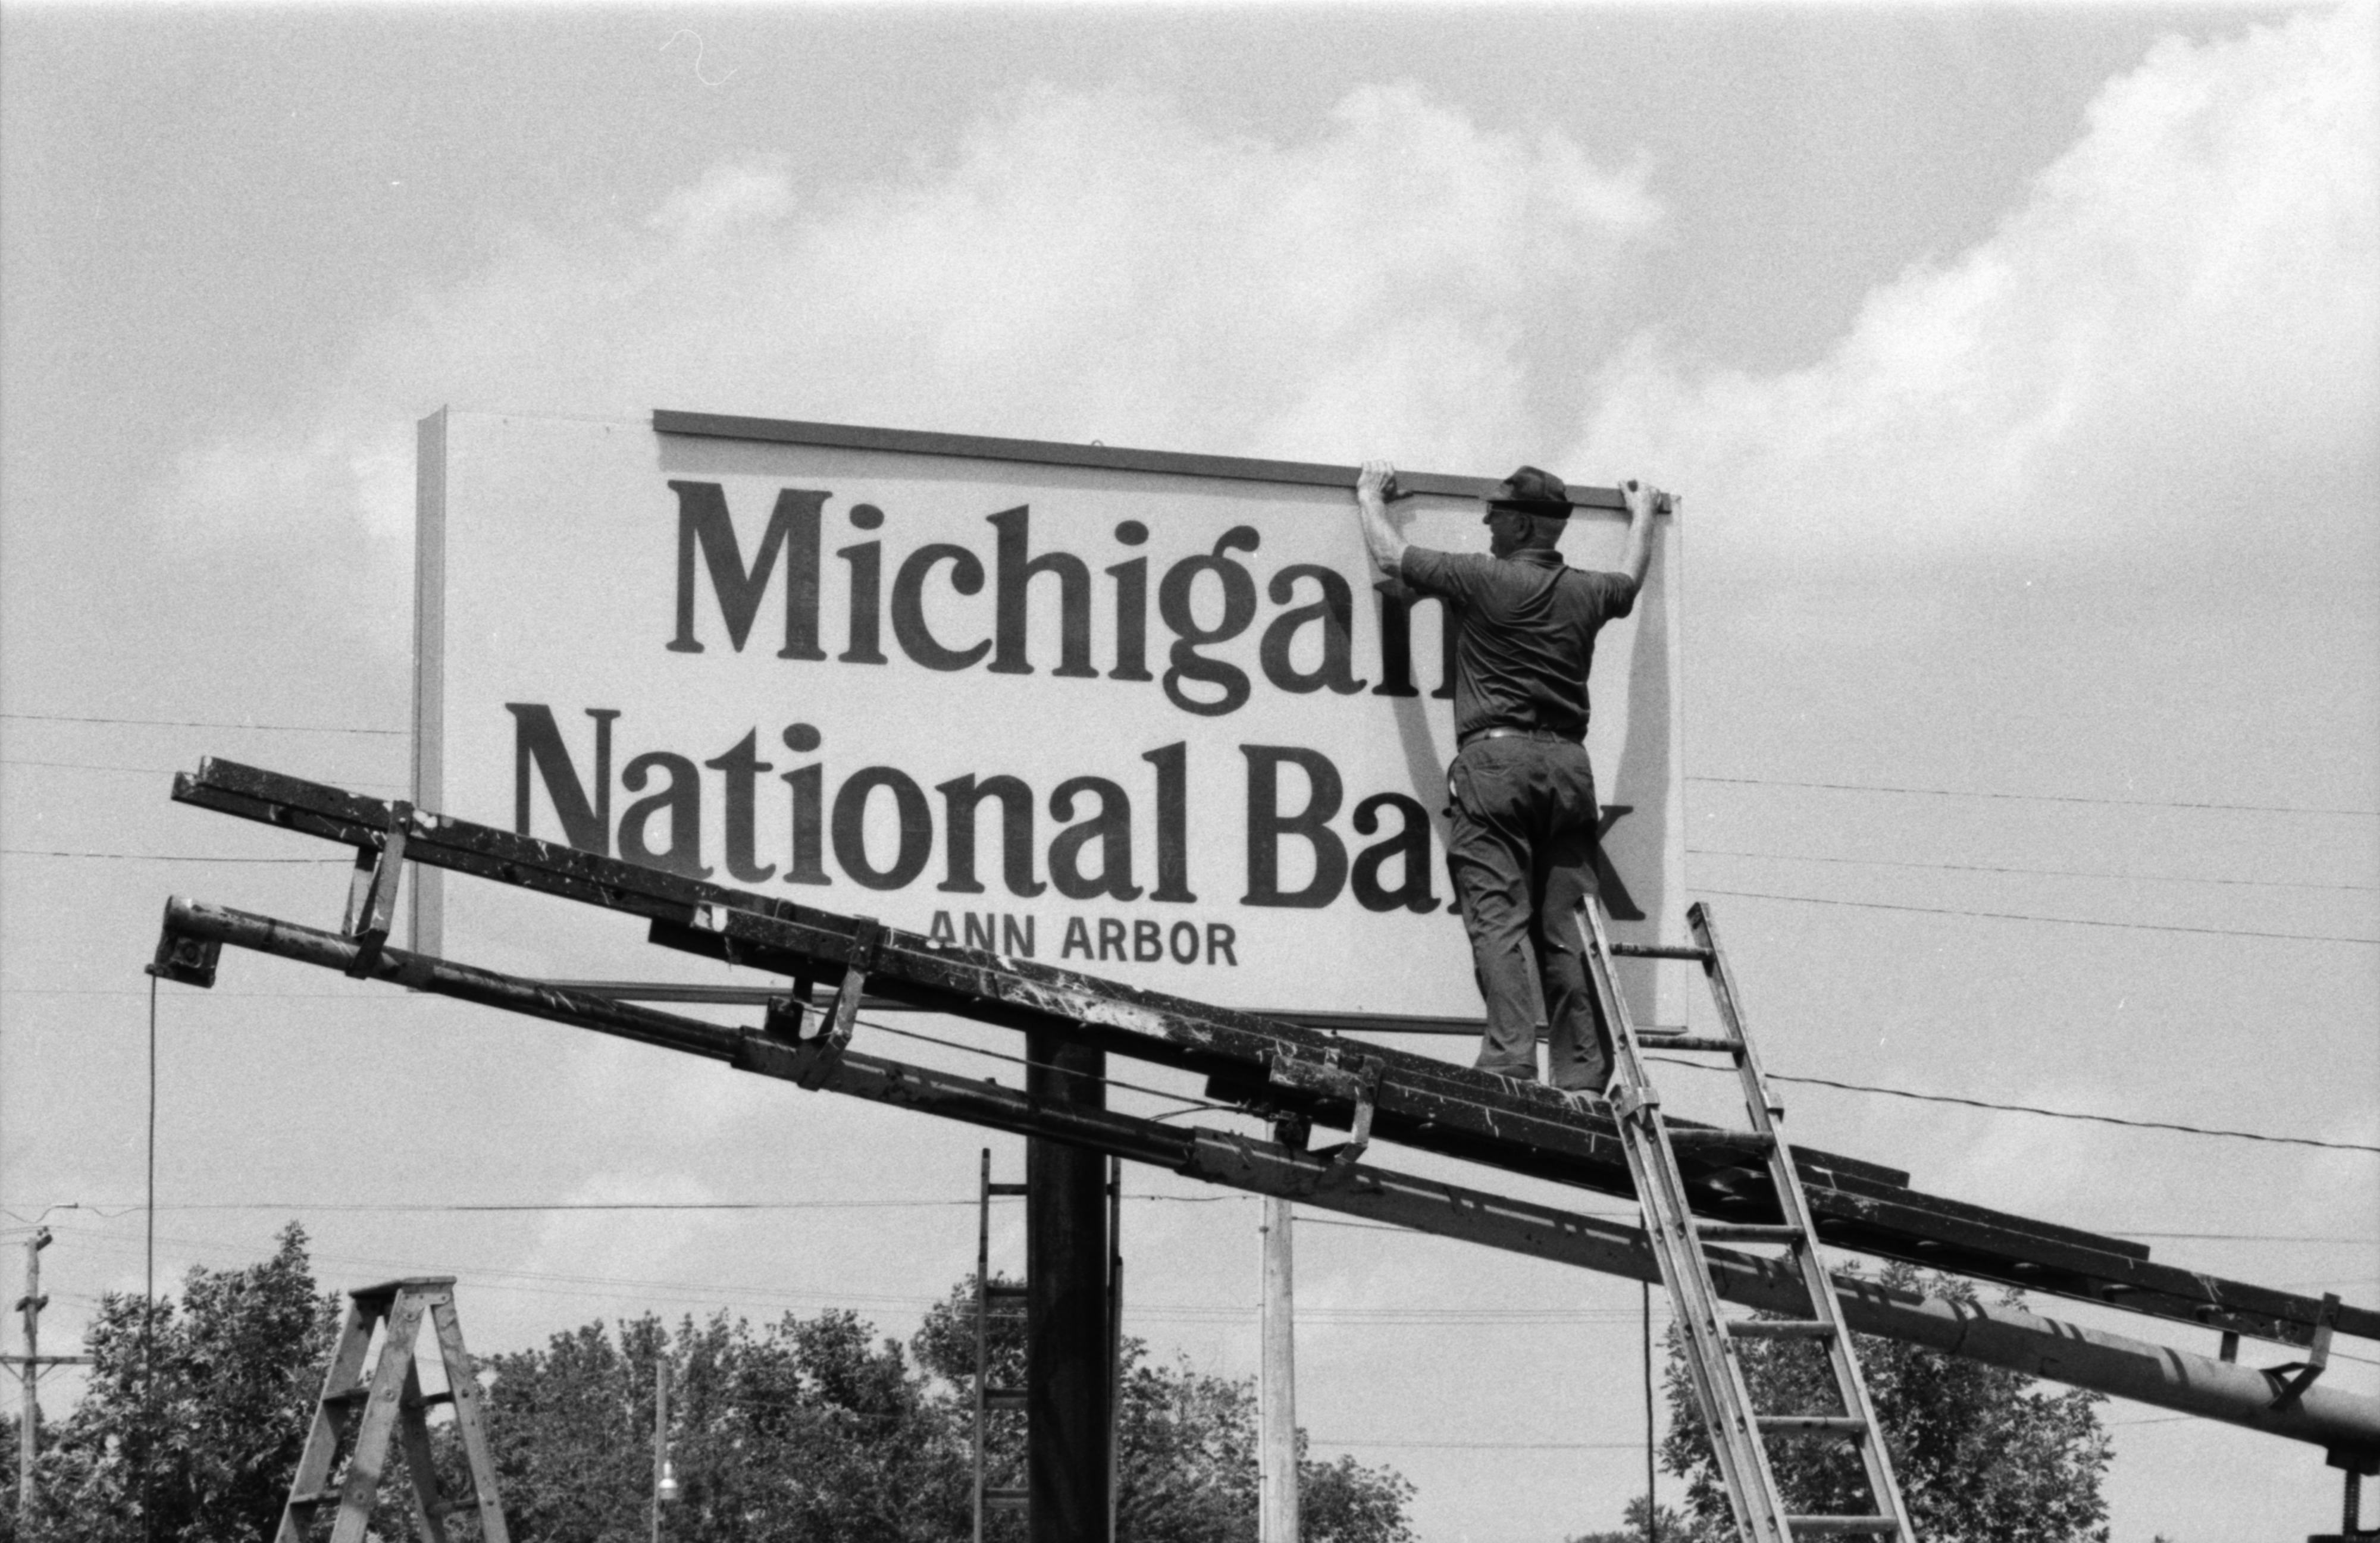 Sign Worker Mike Nelson, August 1985 image